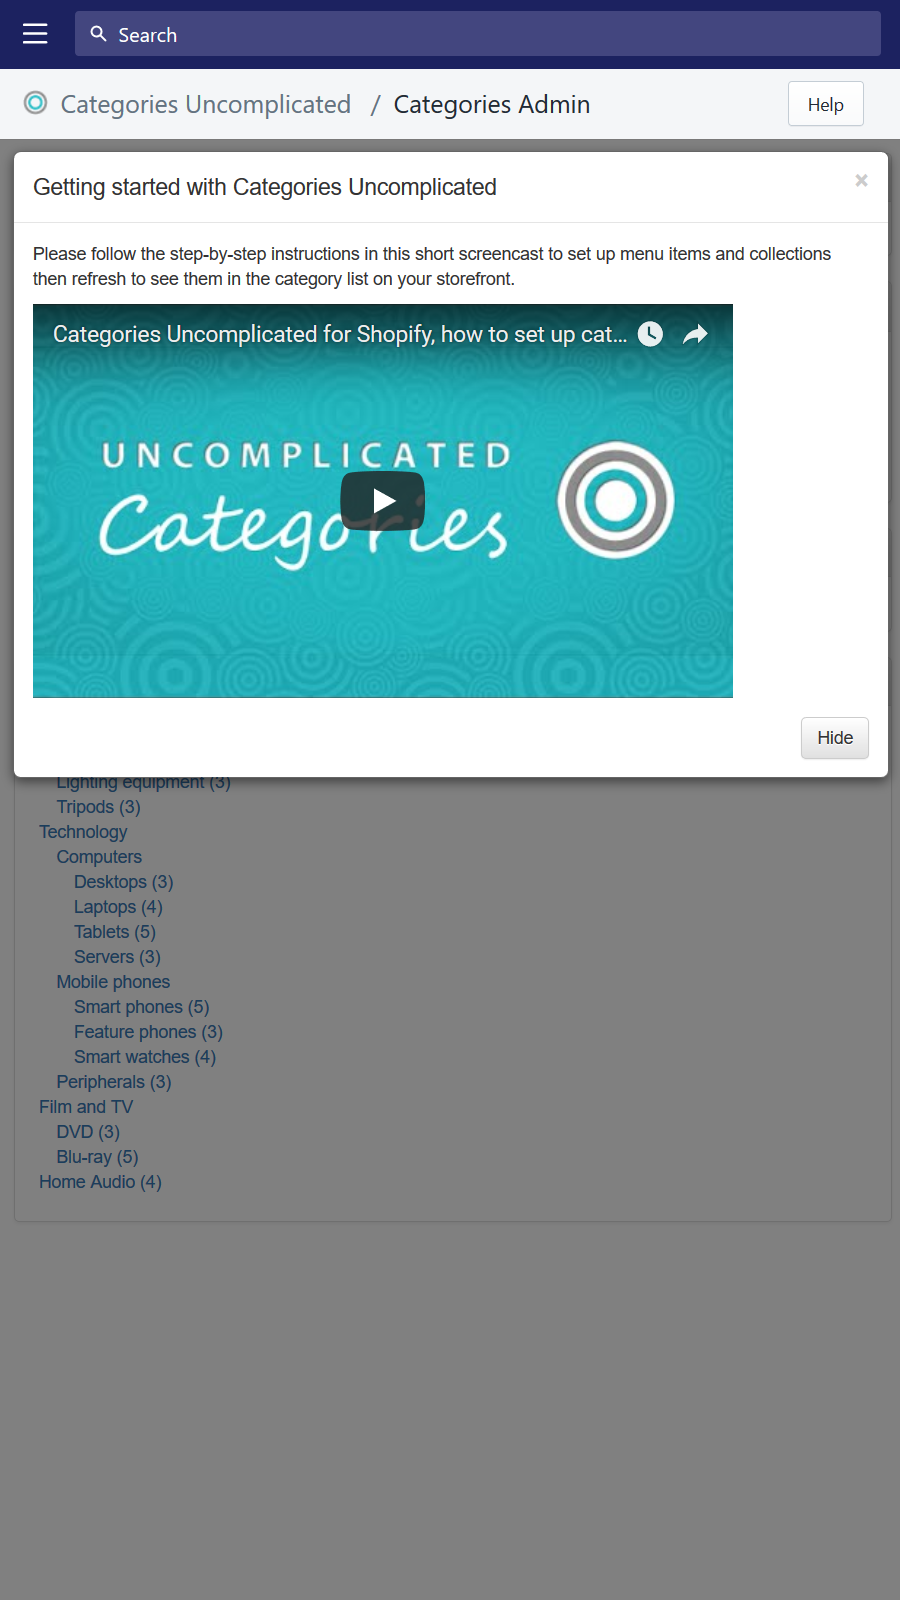 Screencast to help you get set up with categories